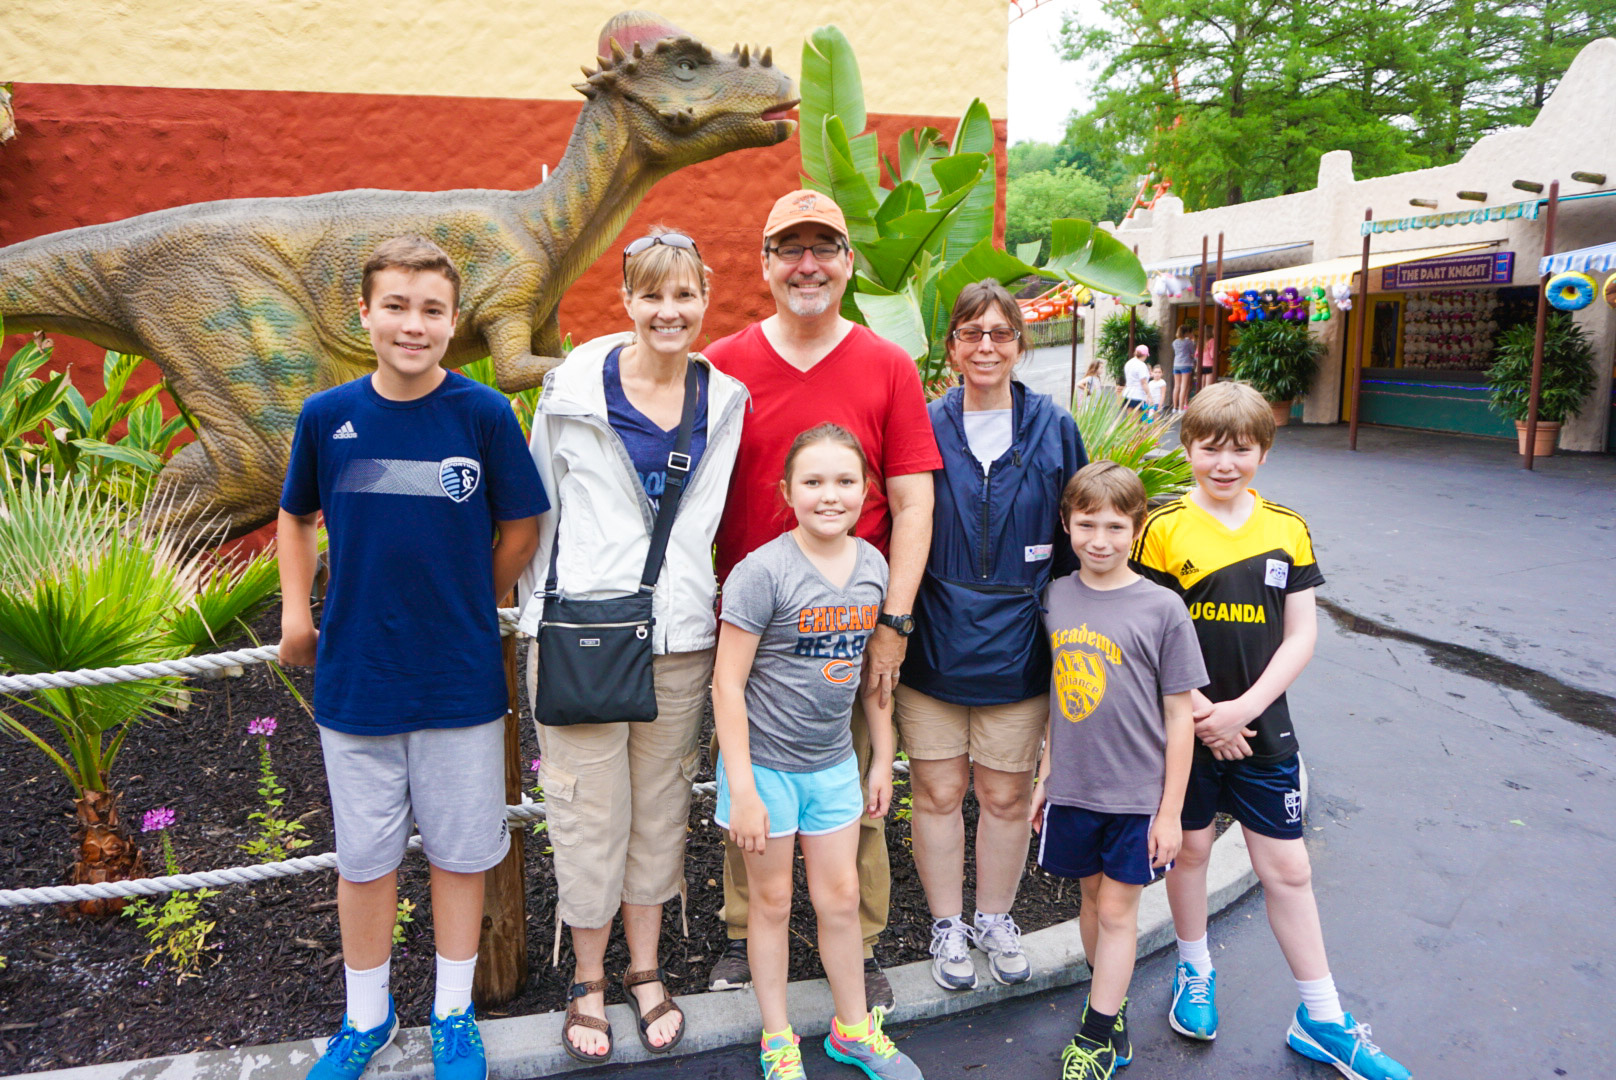 Family gathered at Worlds of Fun amusement park, Kansas City, KS